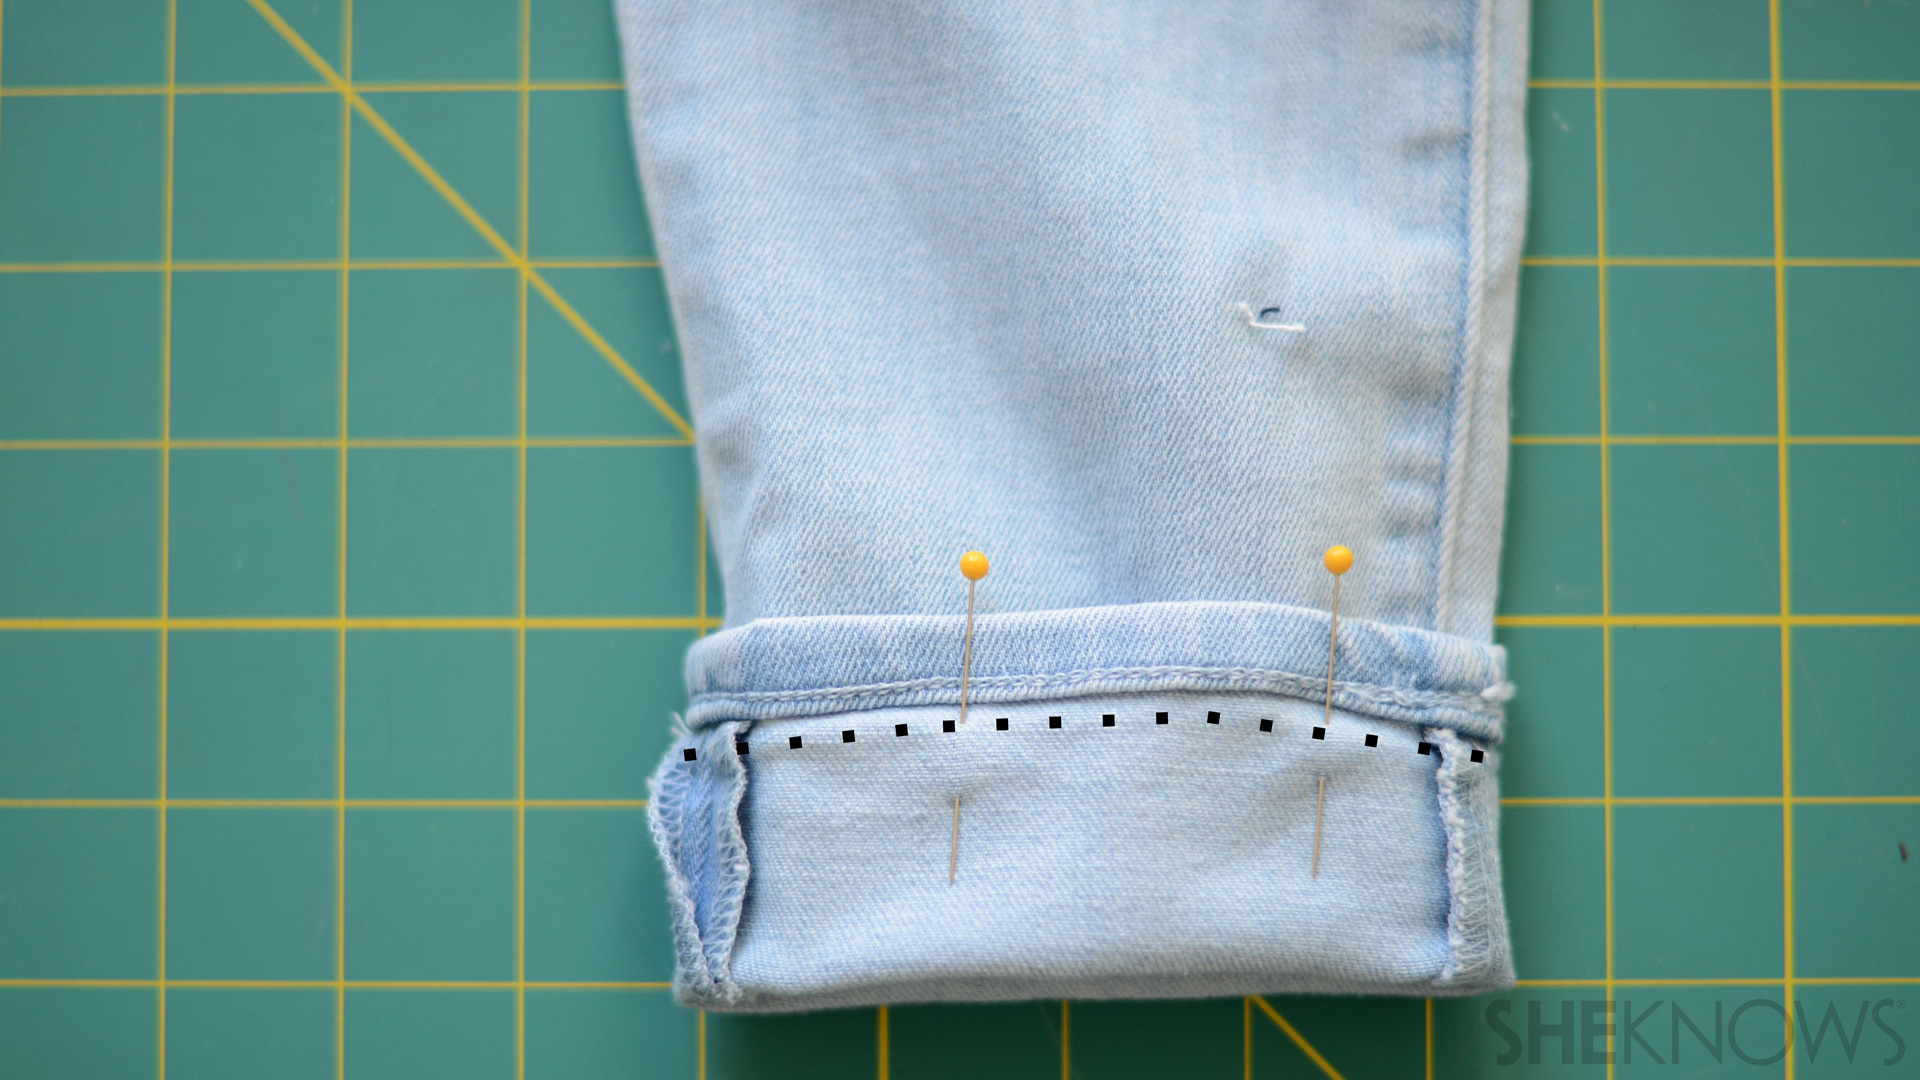 Hem the cuffs of the jeans